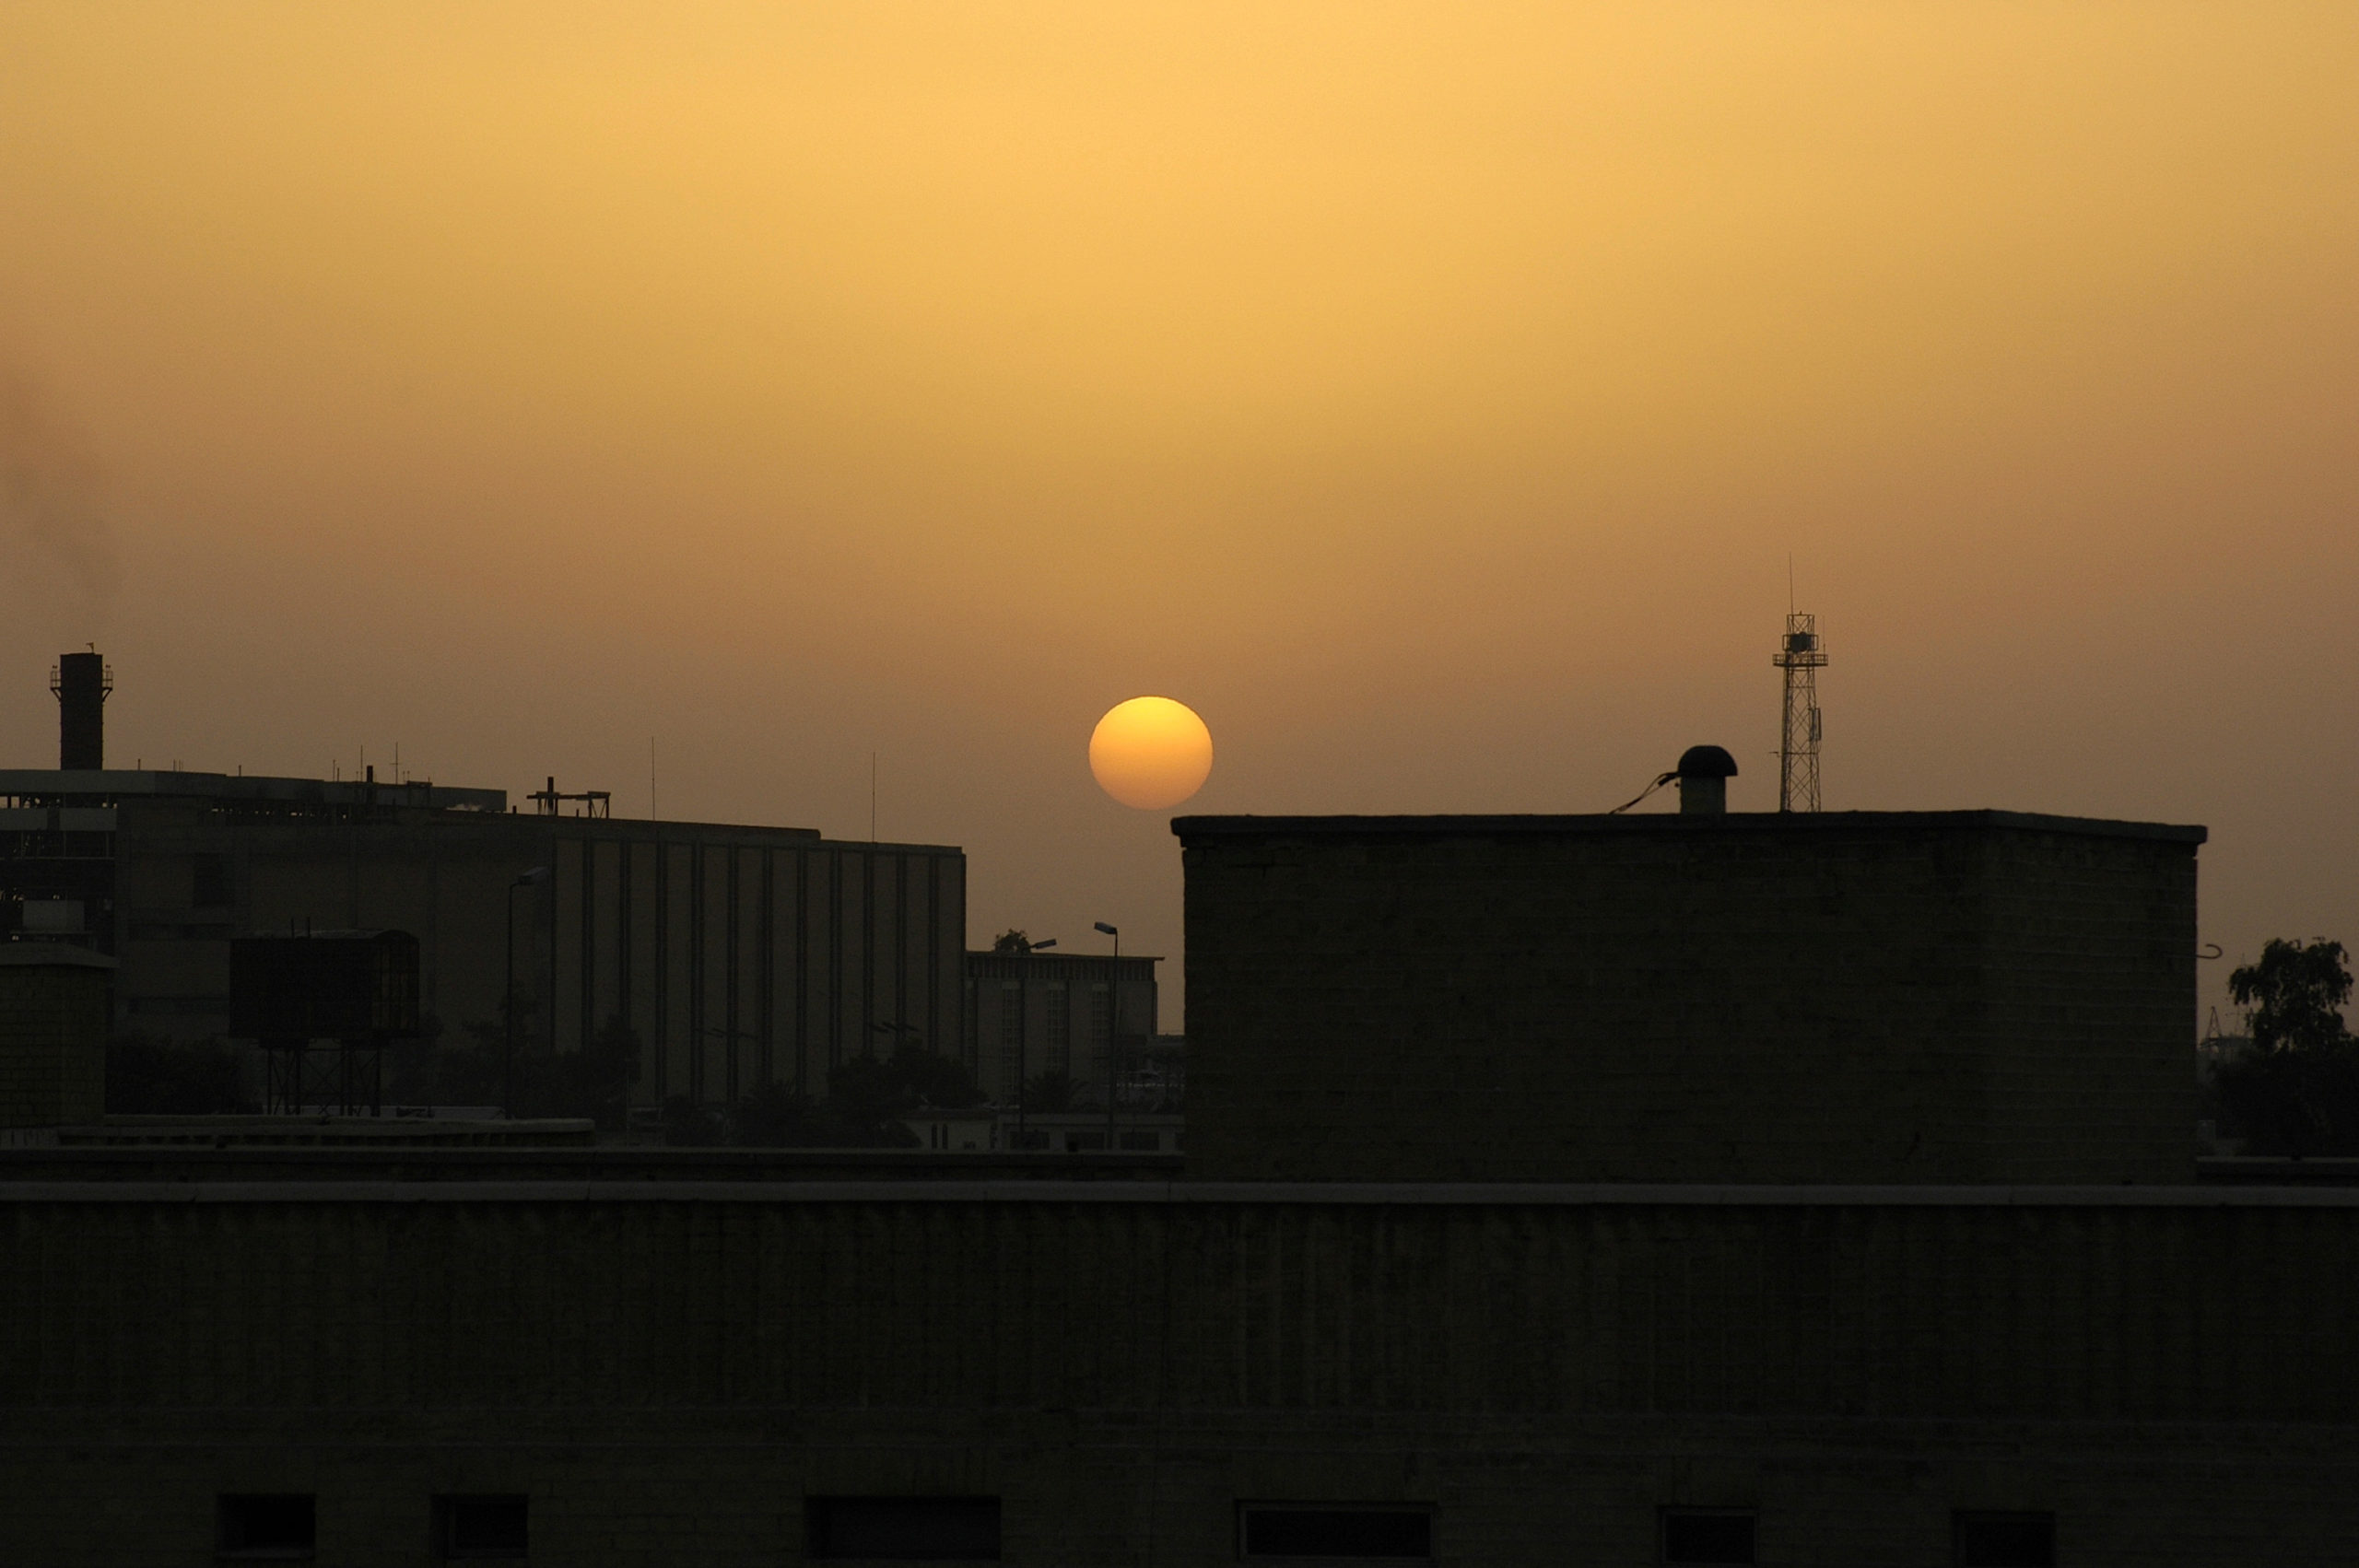 Sunset in Iraq